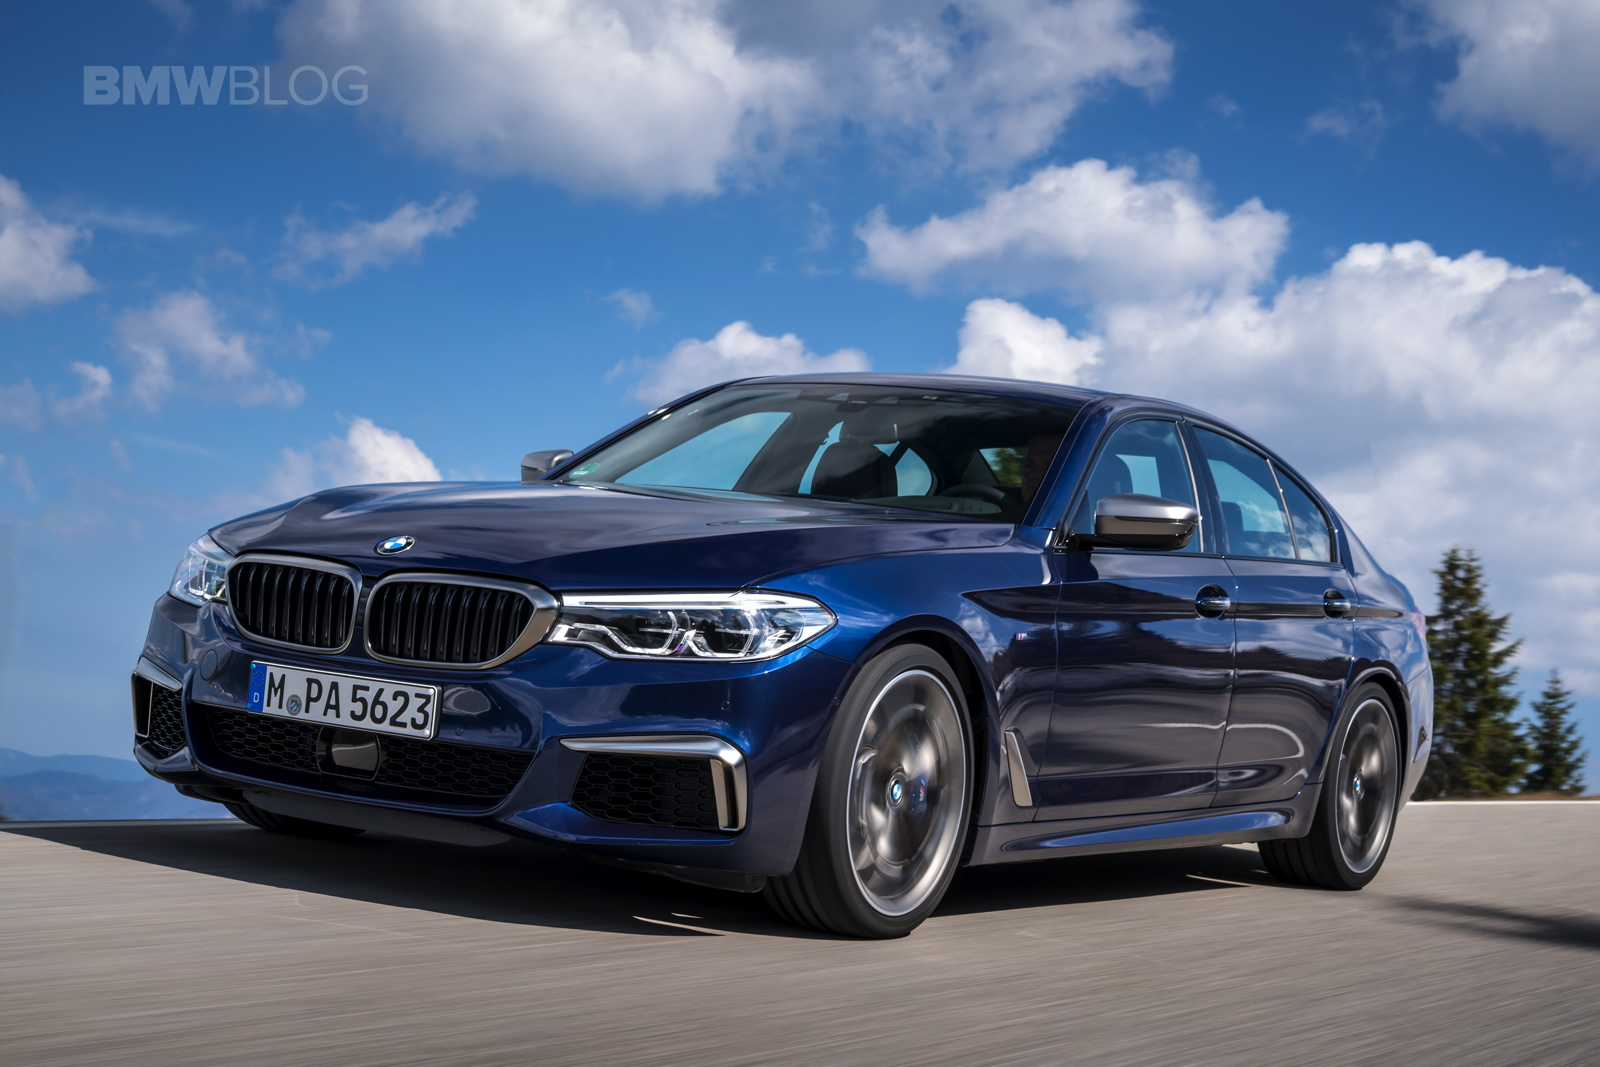 2018 Bmw M550i Xdrive Video Review